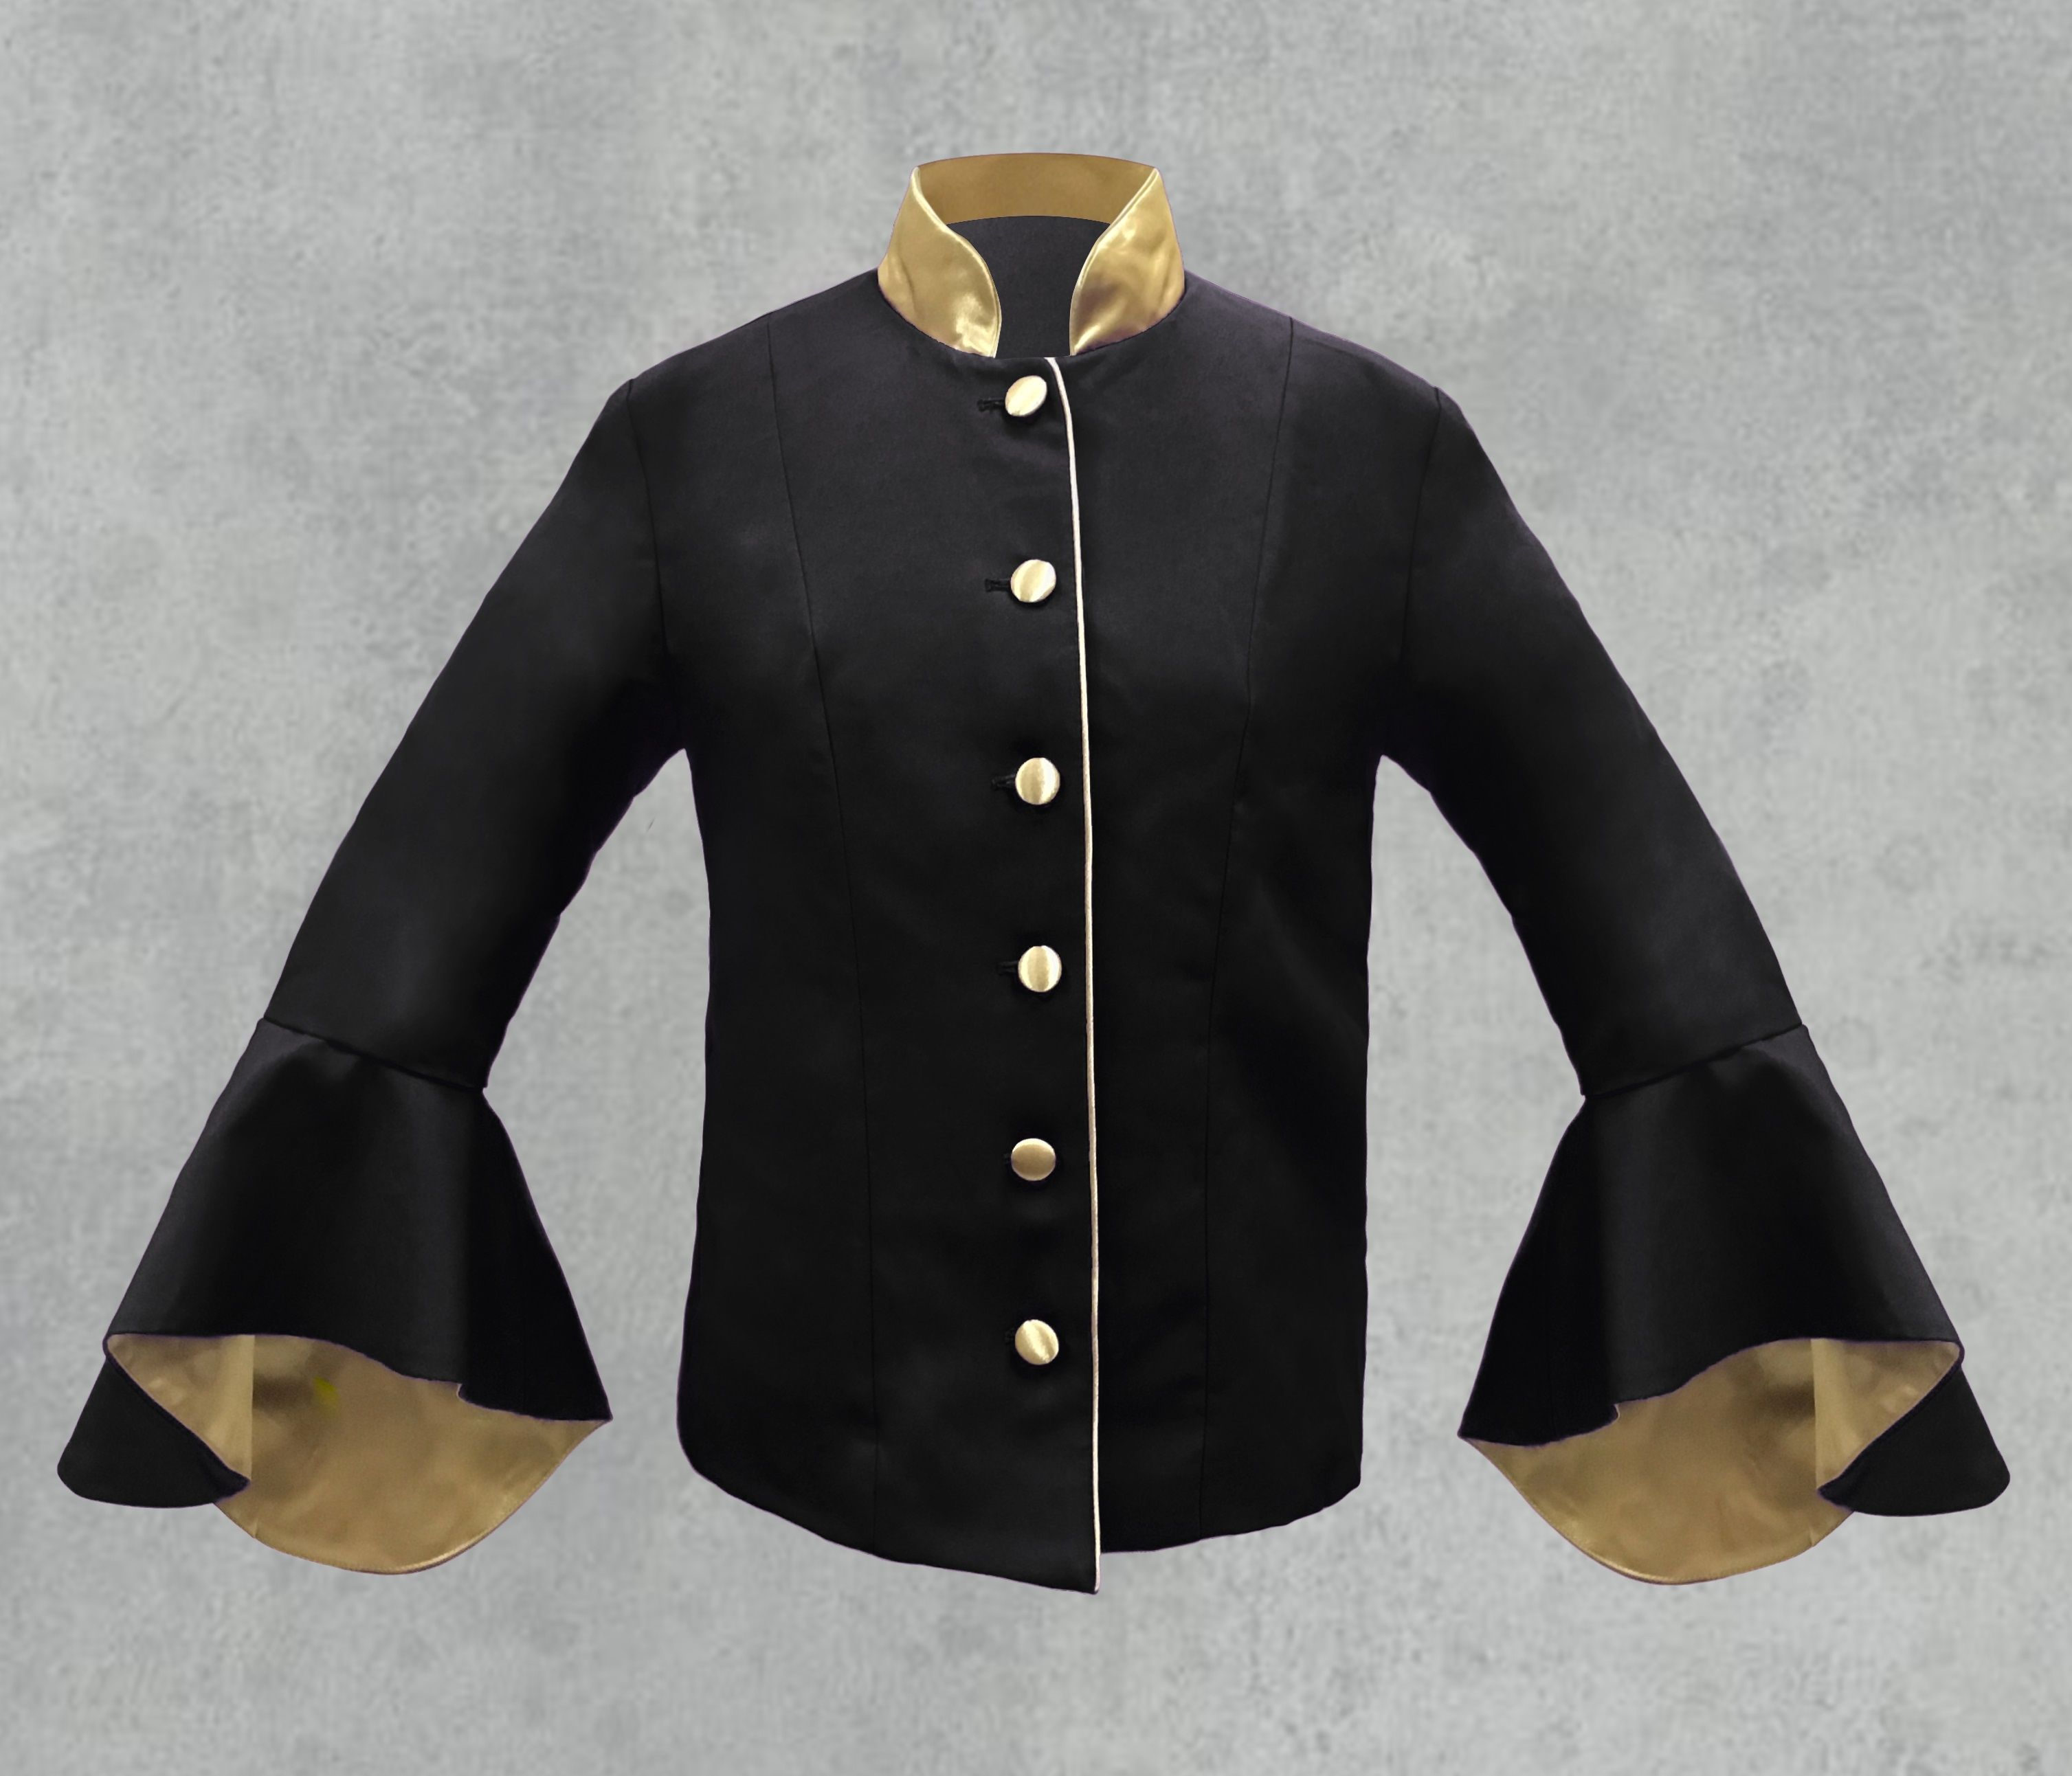 Black and Gold Clergy Jacket for women